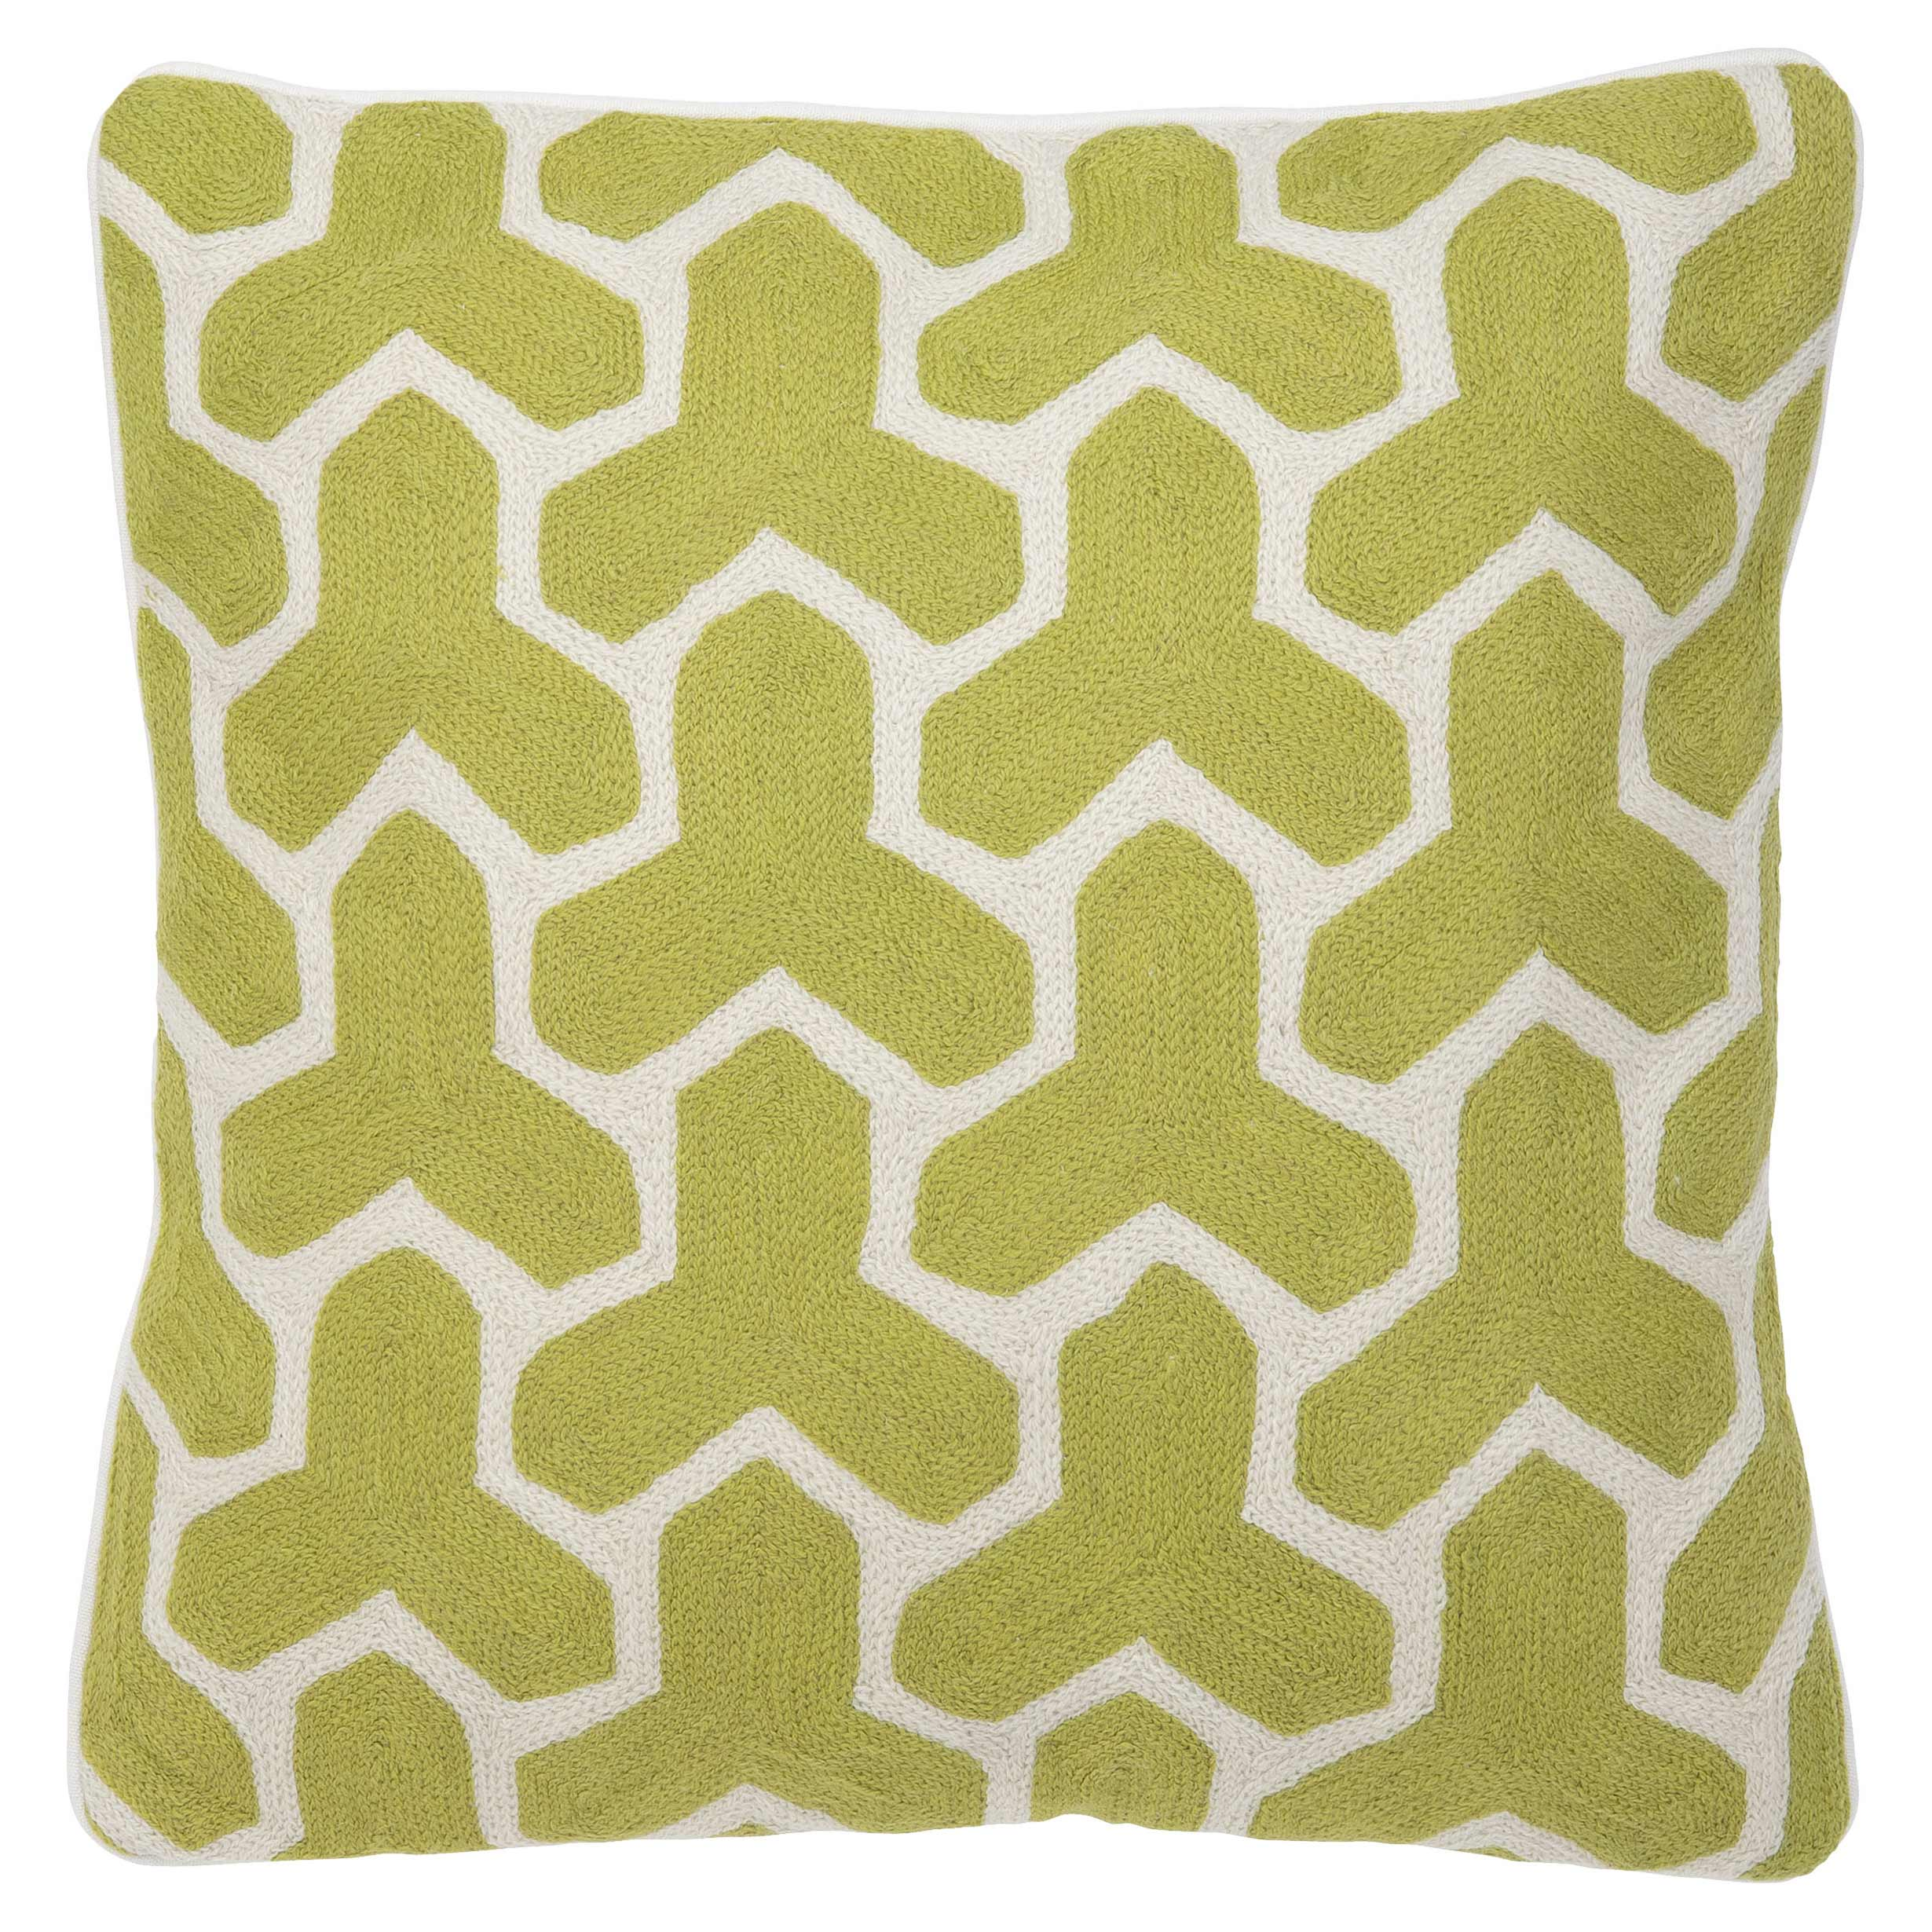 Modern Classic Lime Cream Tile Decorative Pillow - 20x20